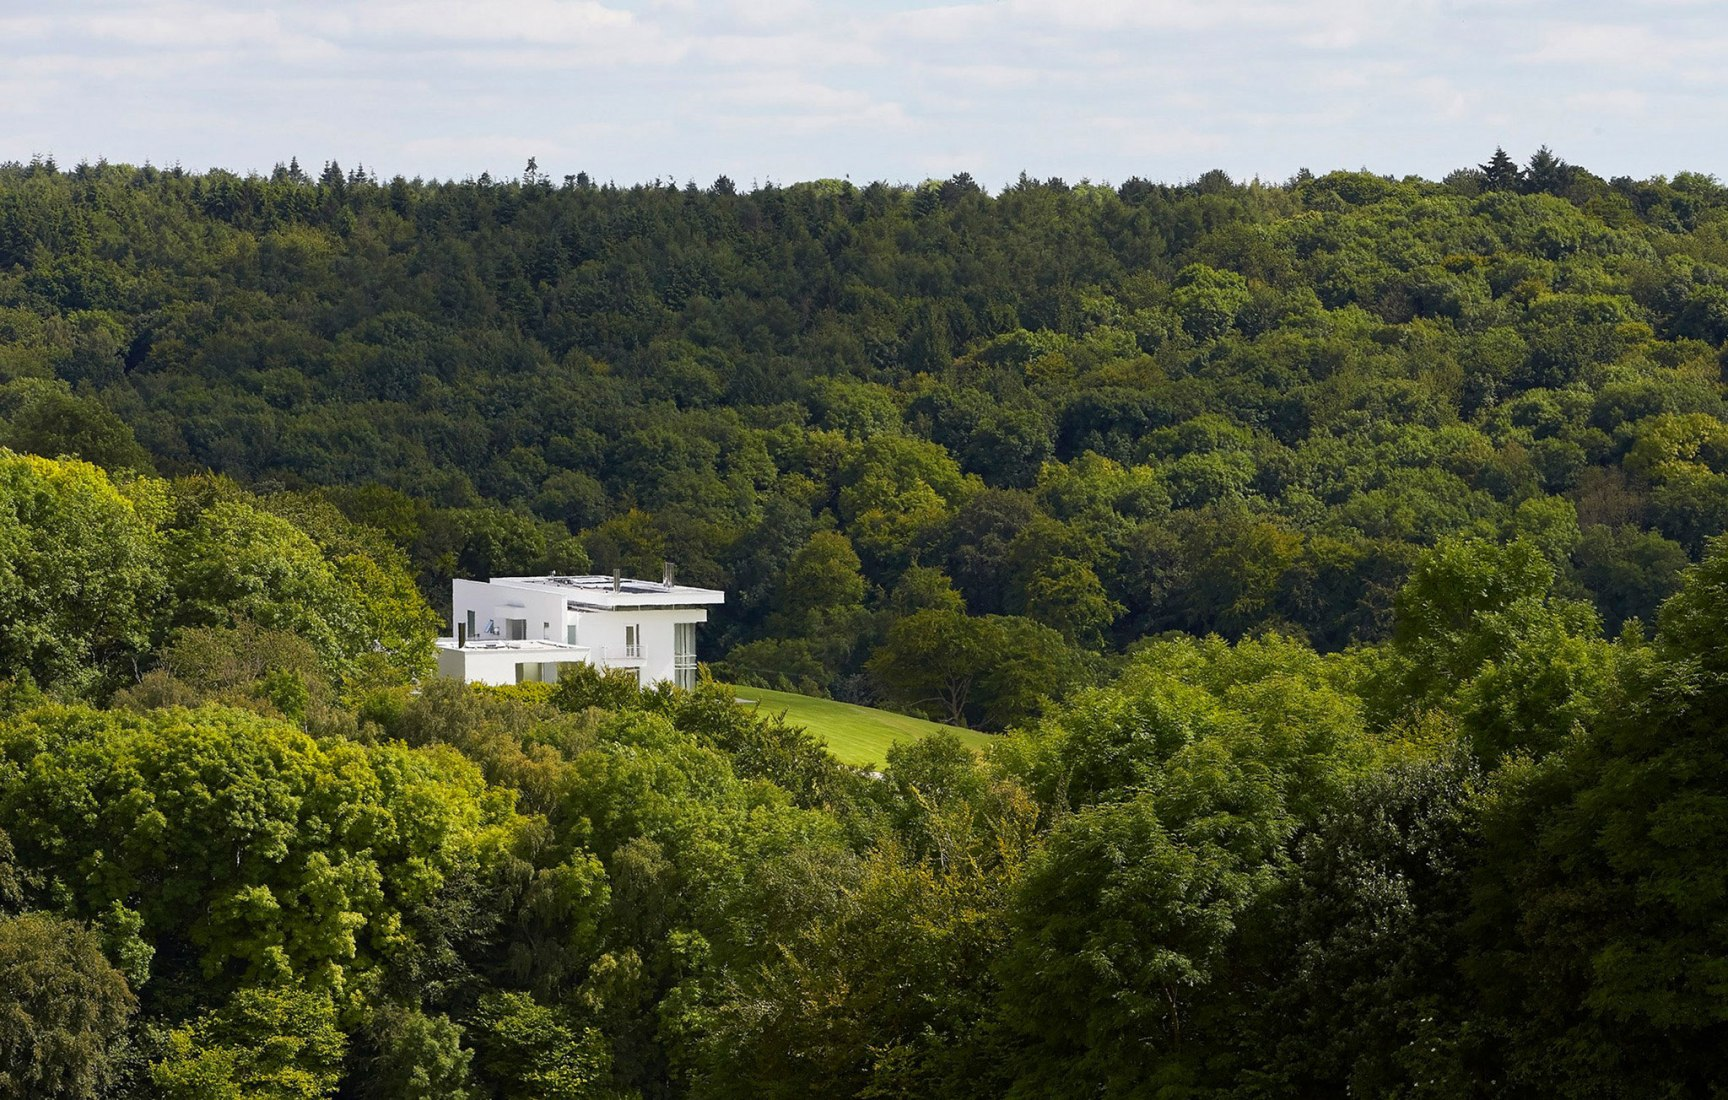 Overview. Oxfordshire Residence by Richard Meier & Partners. Photograph © Hufton+Crow